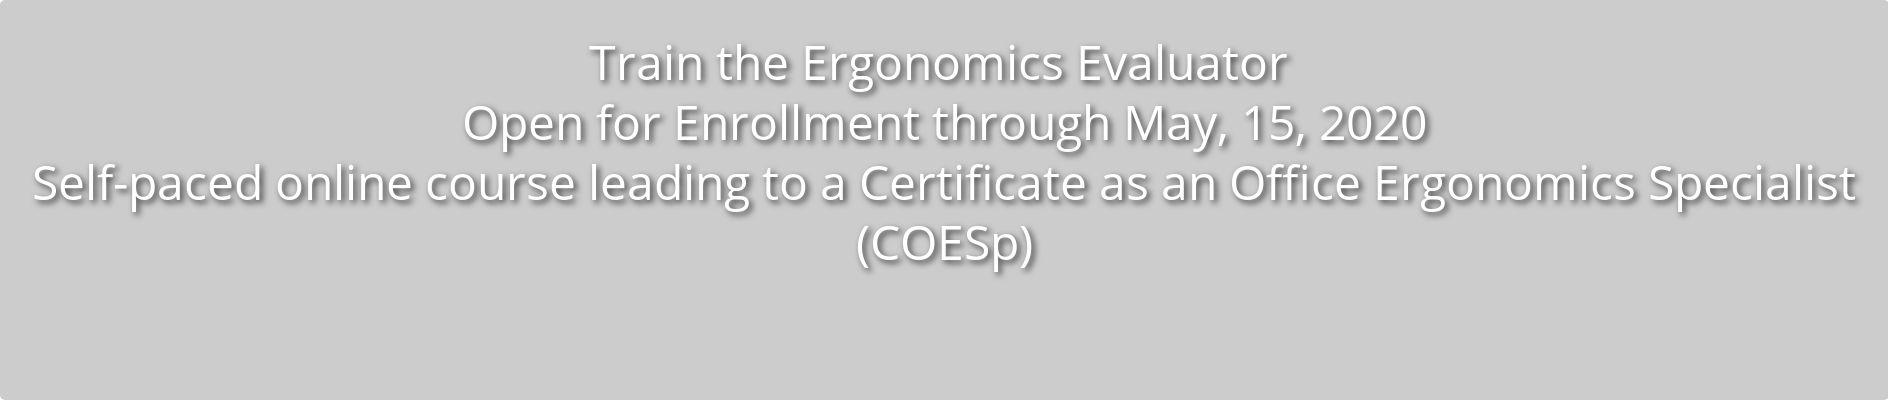 Train the Ergonomics Evaluator Open for Enrollment through May, 15, 2020 Self-paced, online course leading to a  Certificate as an Office Ergonomics Specialist (COESp)